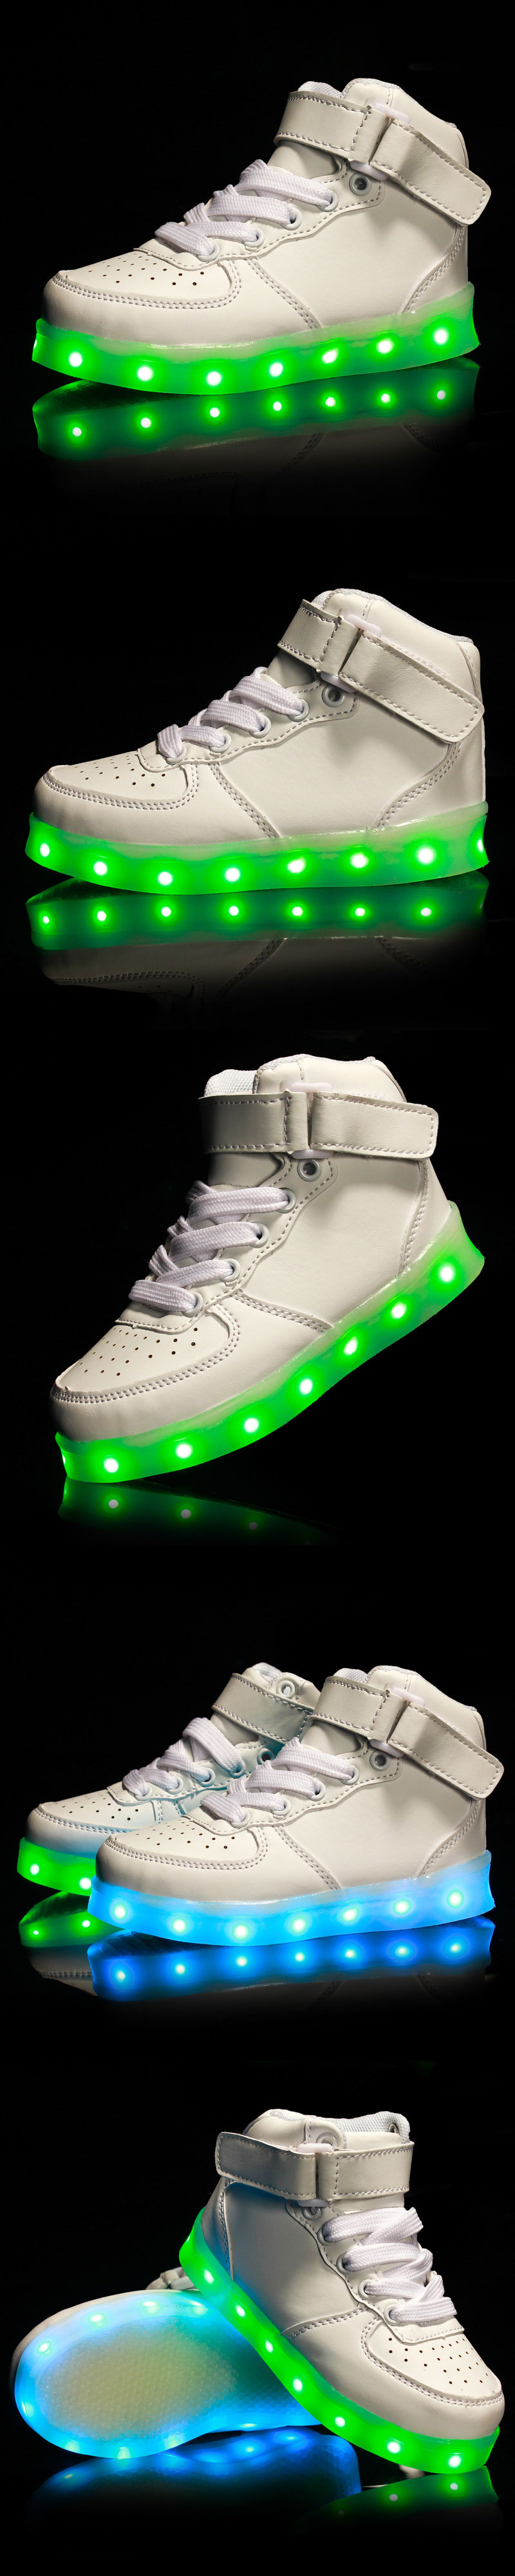 Autumn Winter New Fashion Boys Girls LED Light Shoes Kids USB Charge Colorful Casual Sneakers